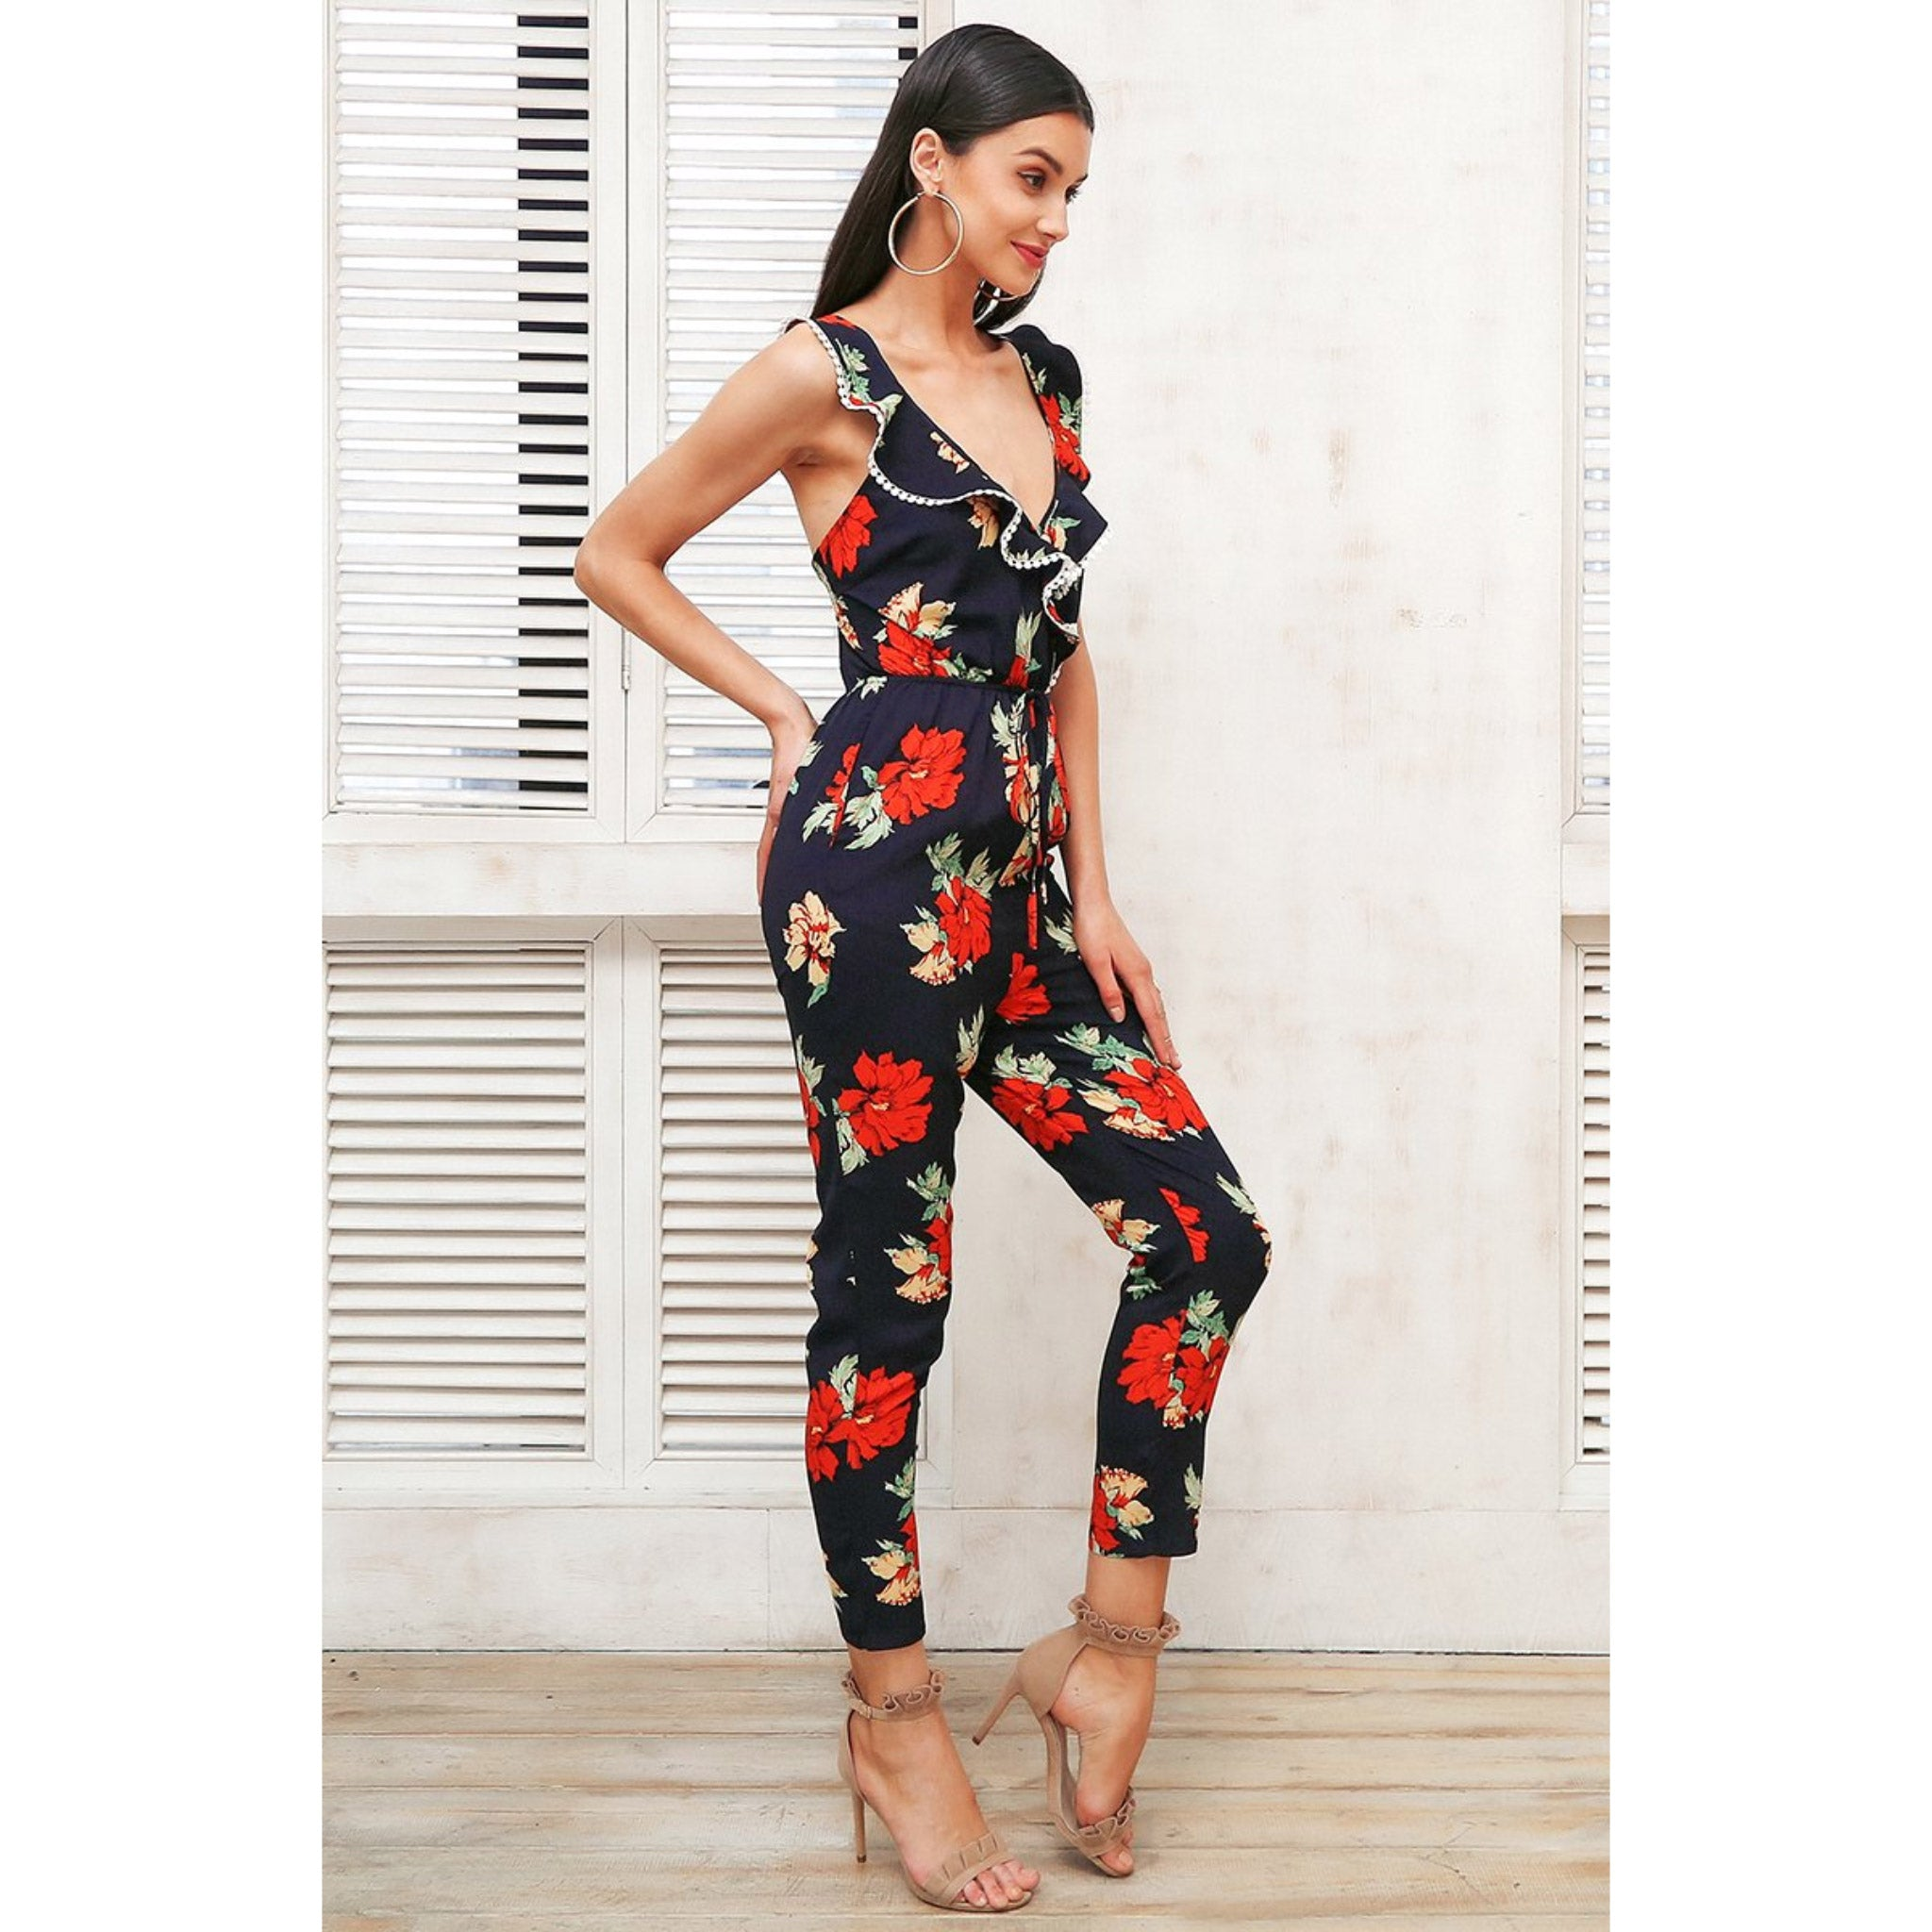 Sleeveless Jumpsuit Outfit for Women with Floral Pattern and Ruffle V-neck